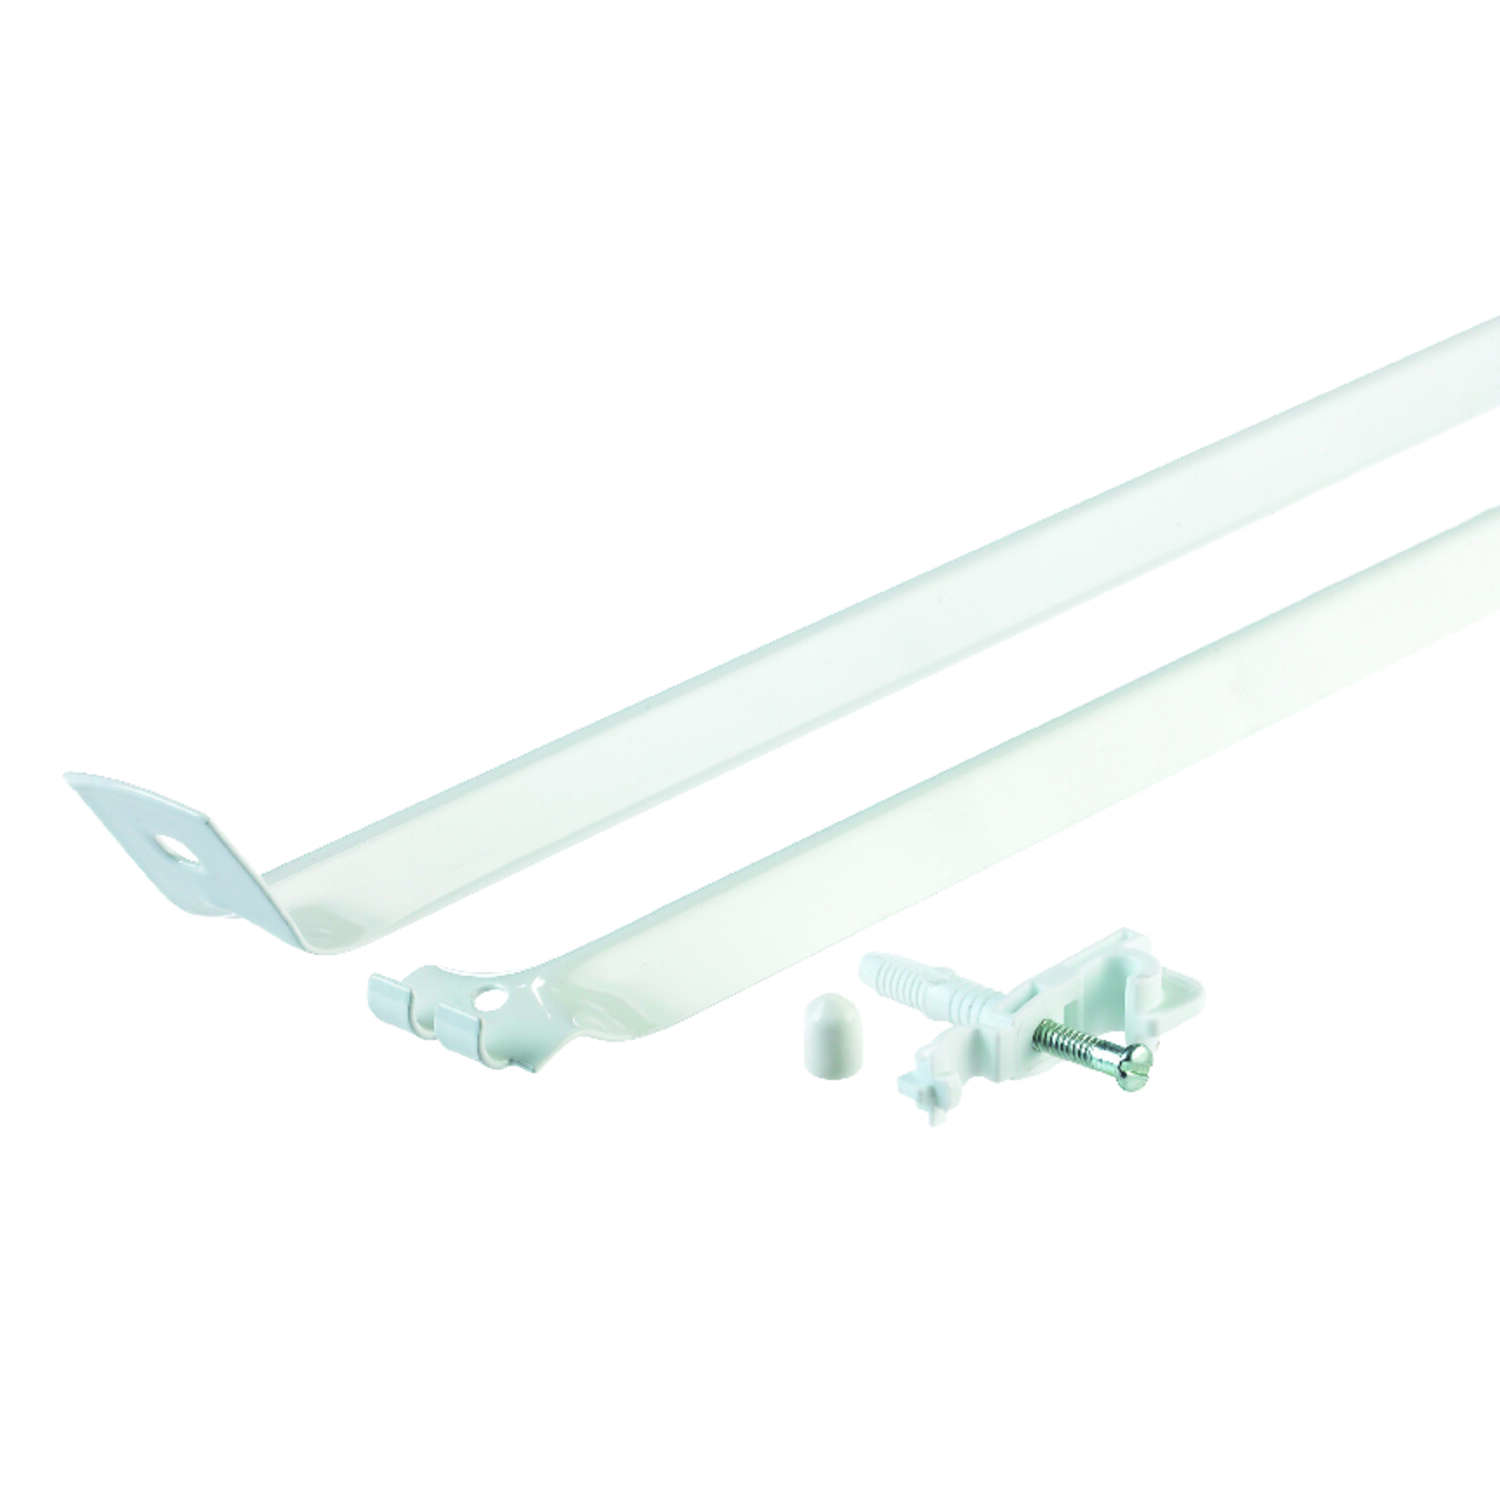 Rubbermaid  1.1 in. H x 12 in. W x 16 in. L Aluminum  Support Brace/ Wall Anchor W/Drive Pin  1 pk